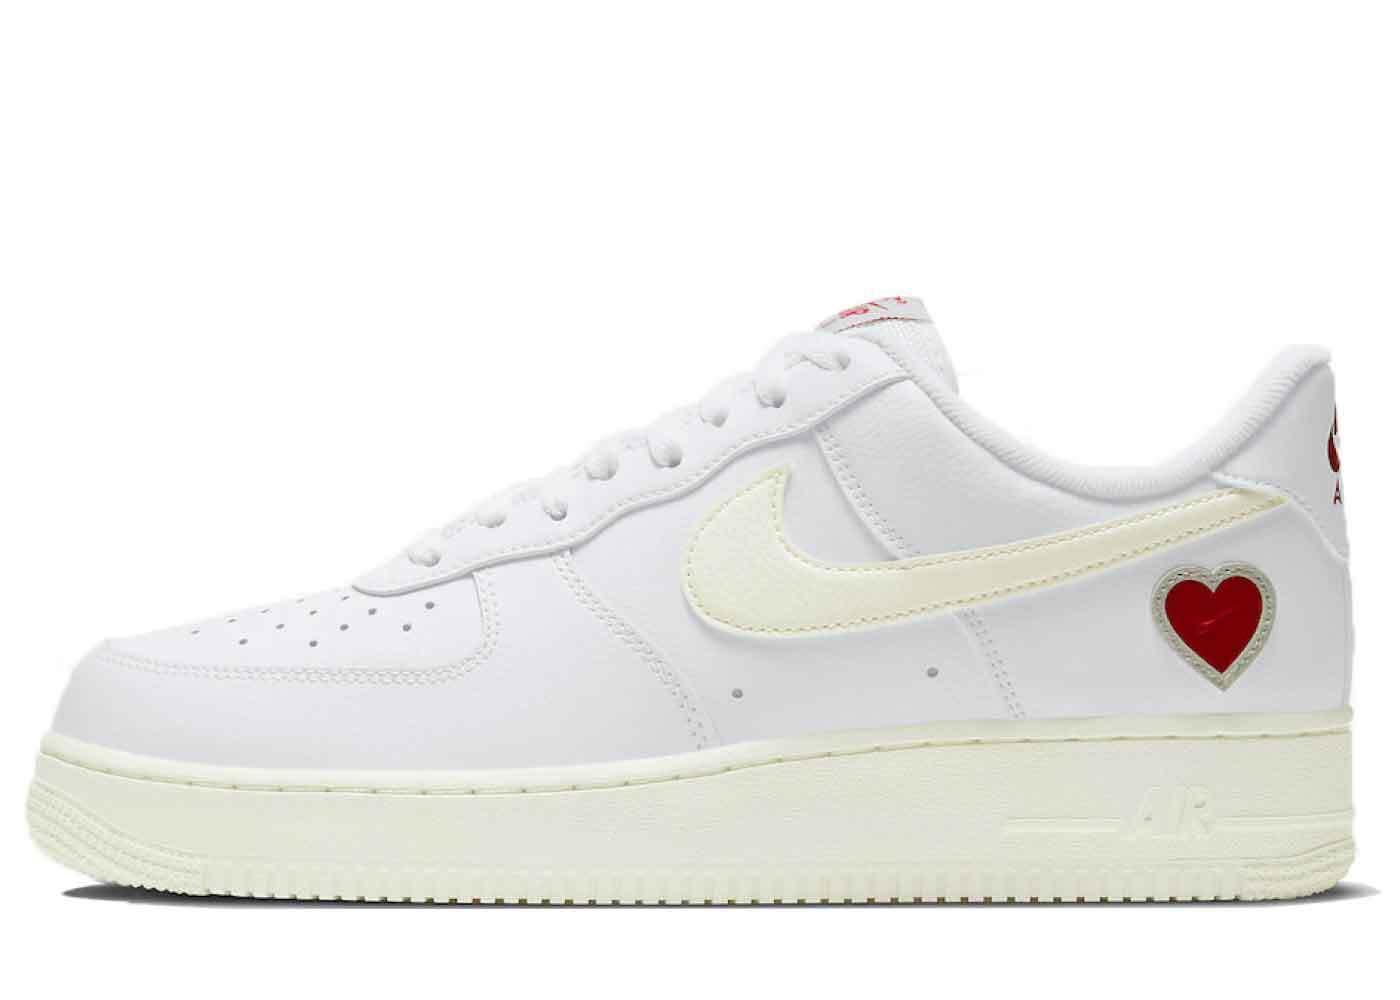 Nike Air Force 1 Low Valentine's Day (2021)の写真